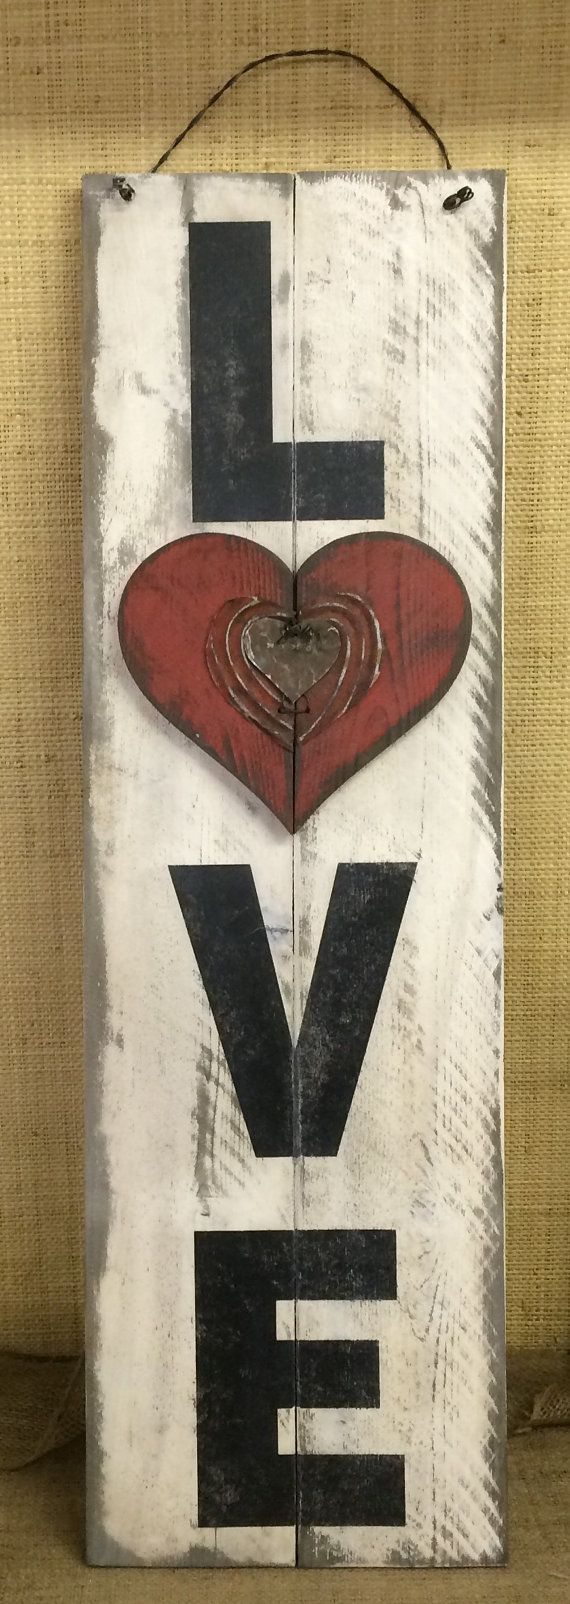 "Love / Valentine's Day Tall Holiday/Seasonal Wood Sign » Handmade &  Painted, Reclaimed Rusty Metal Rustic Distressed ""Pallet"" Sign"